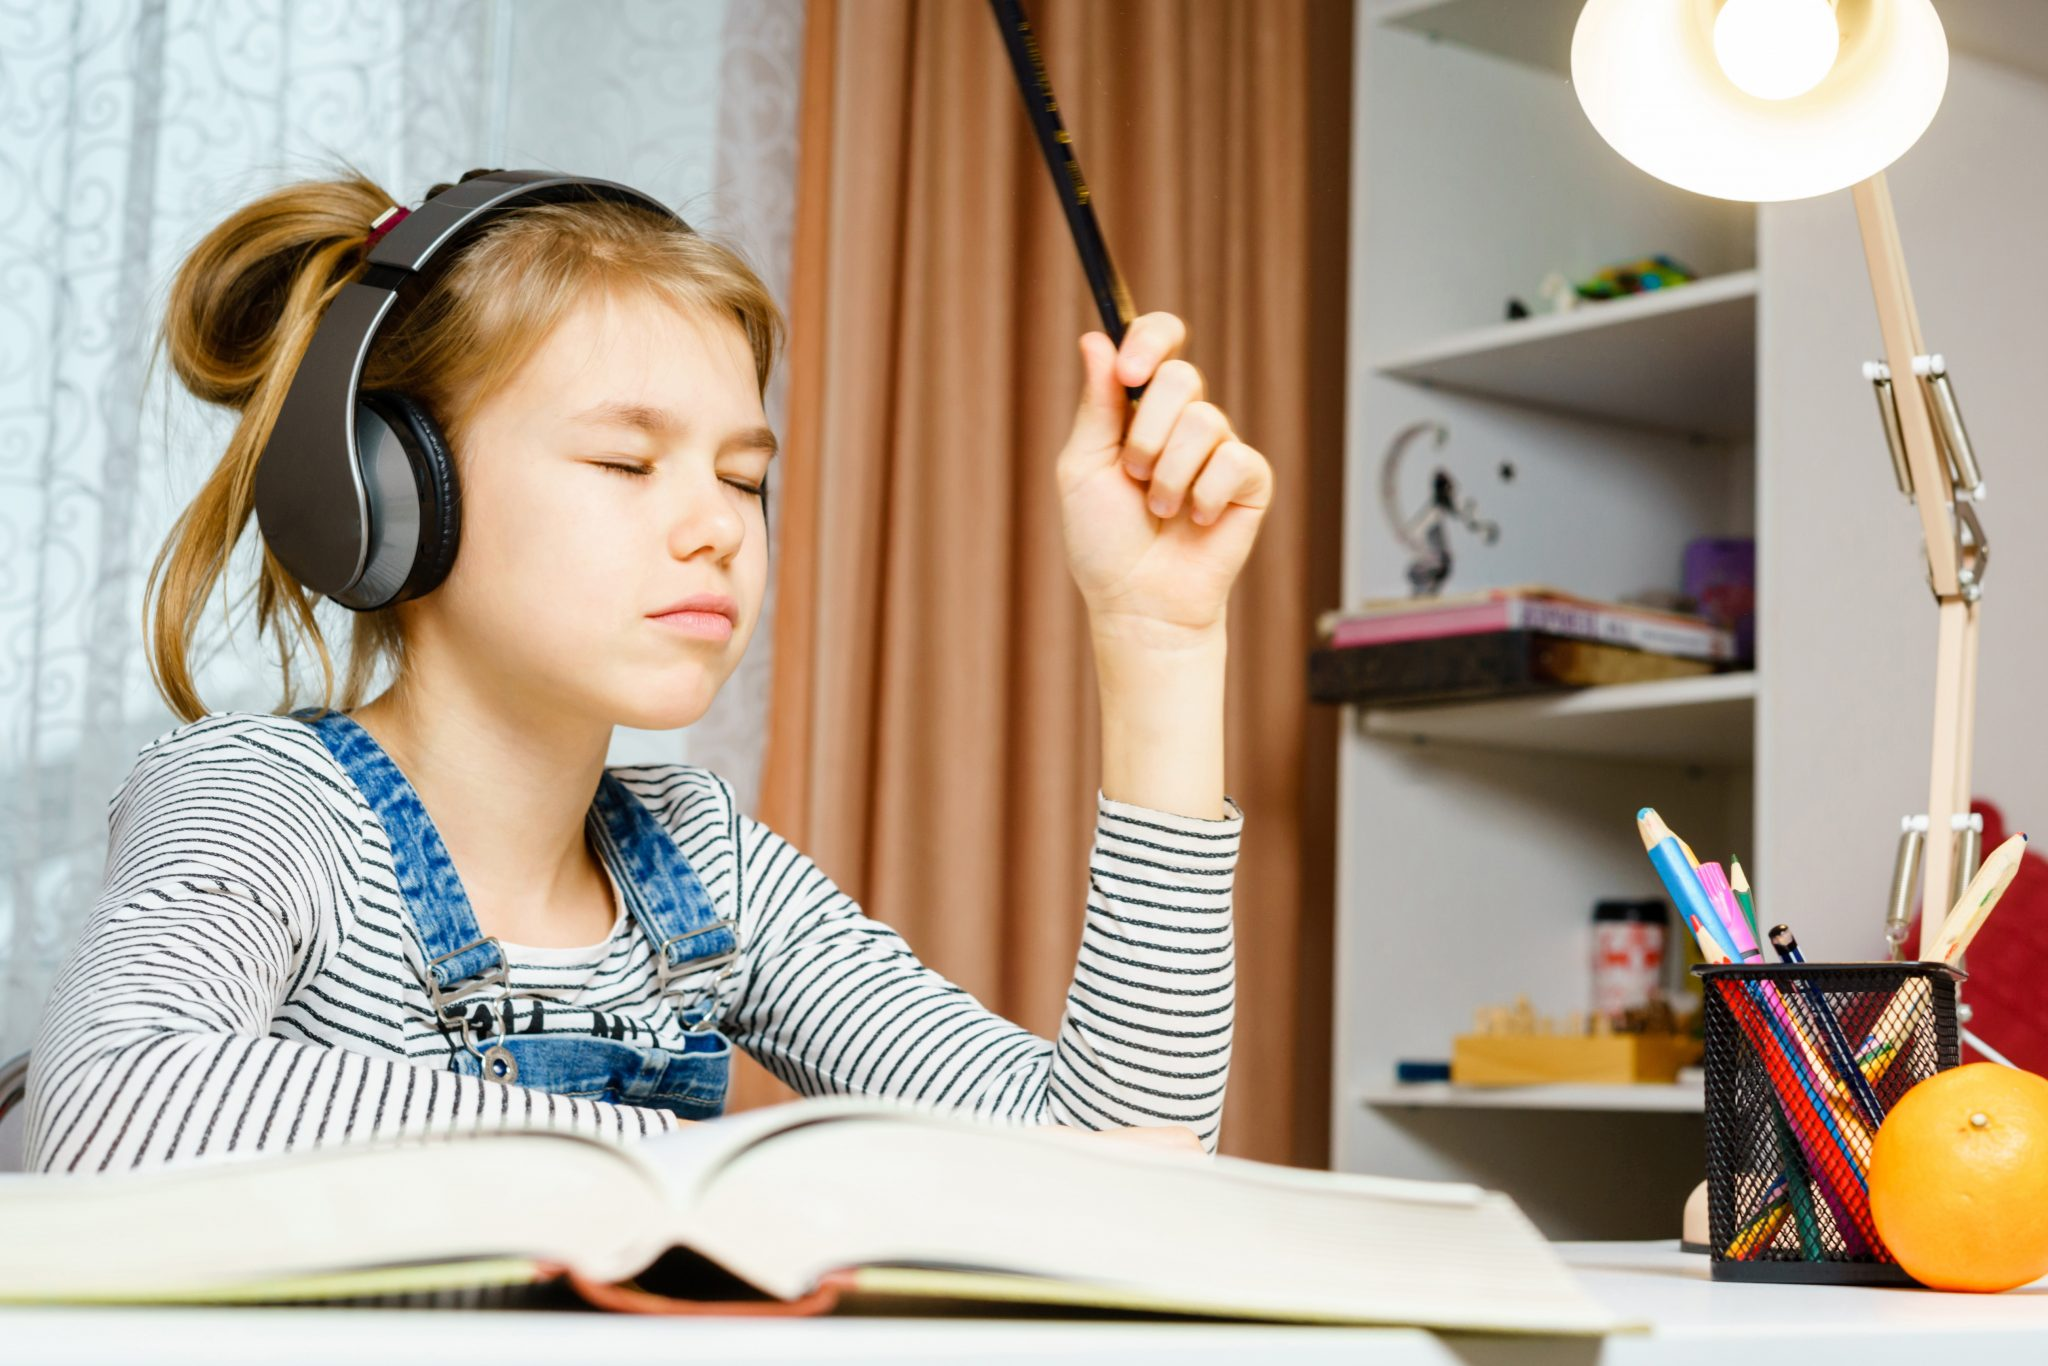 Nurturing Students Through Home Learning